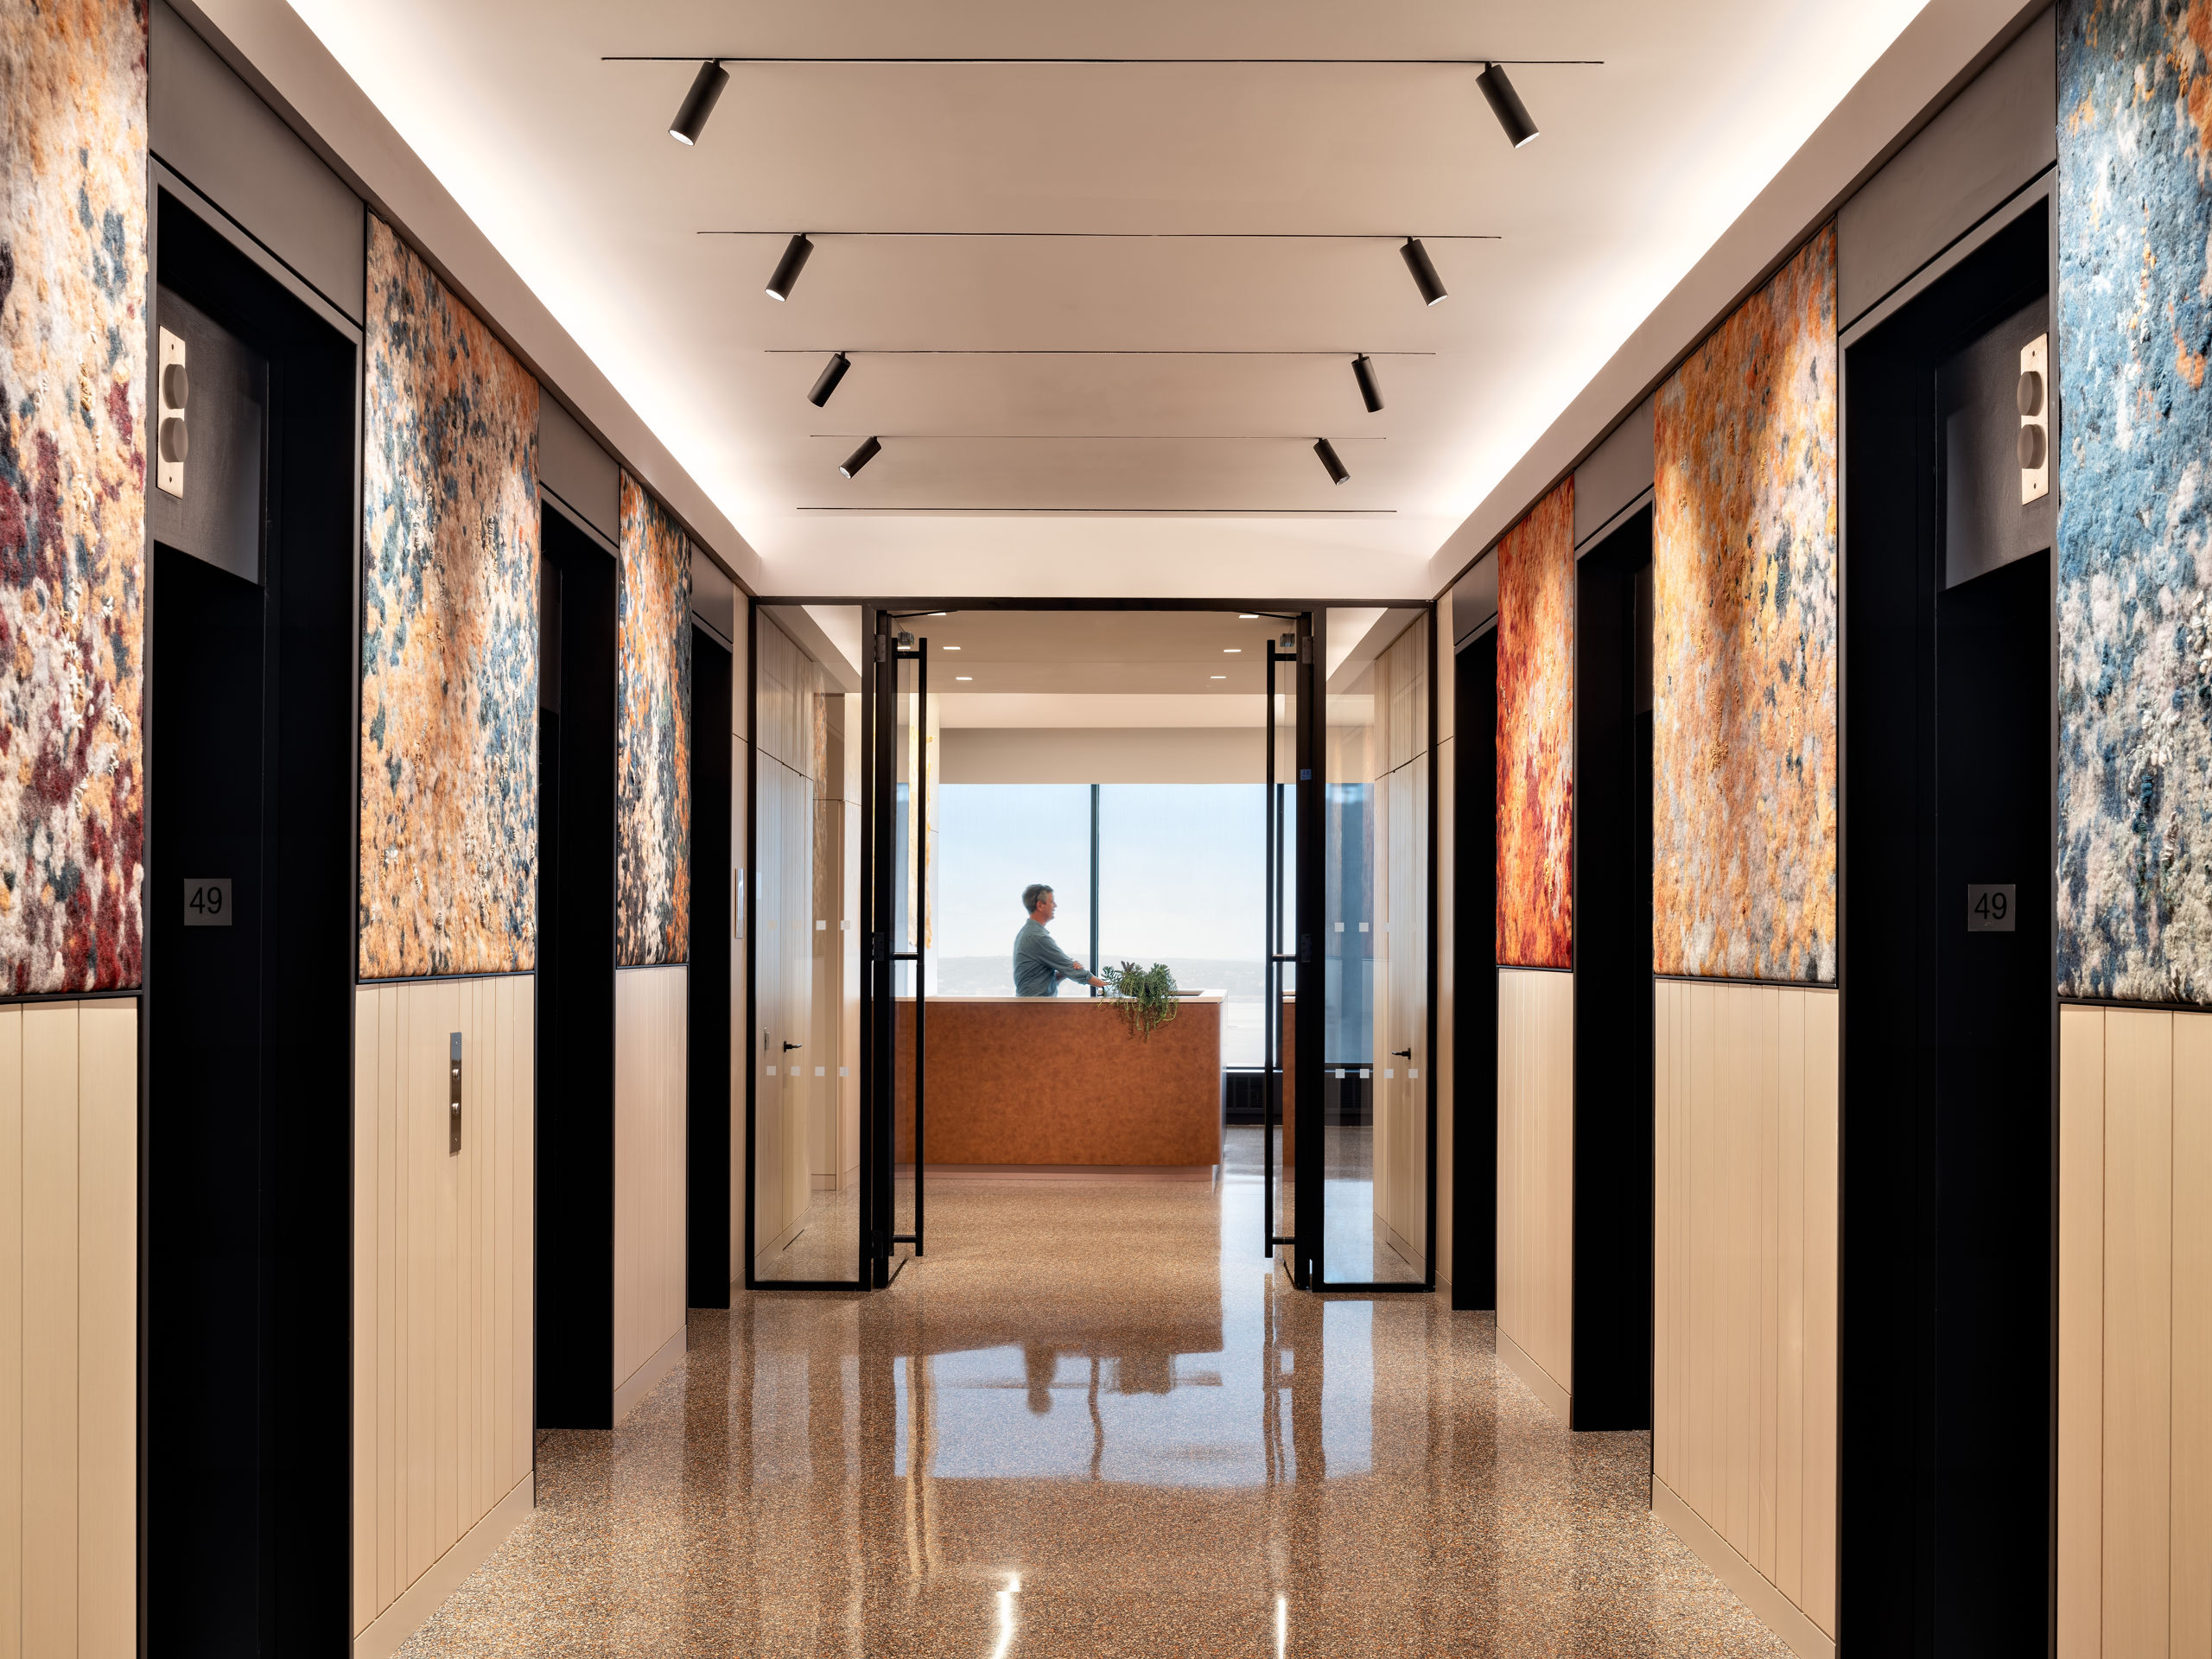 Wallace Foundation Elevator Bank with Art